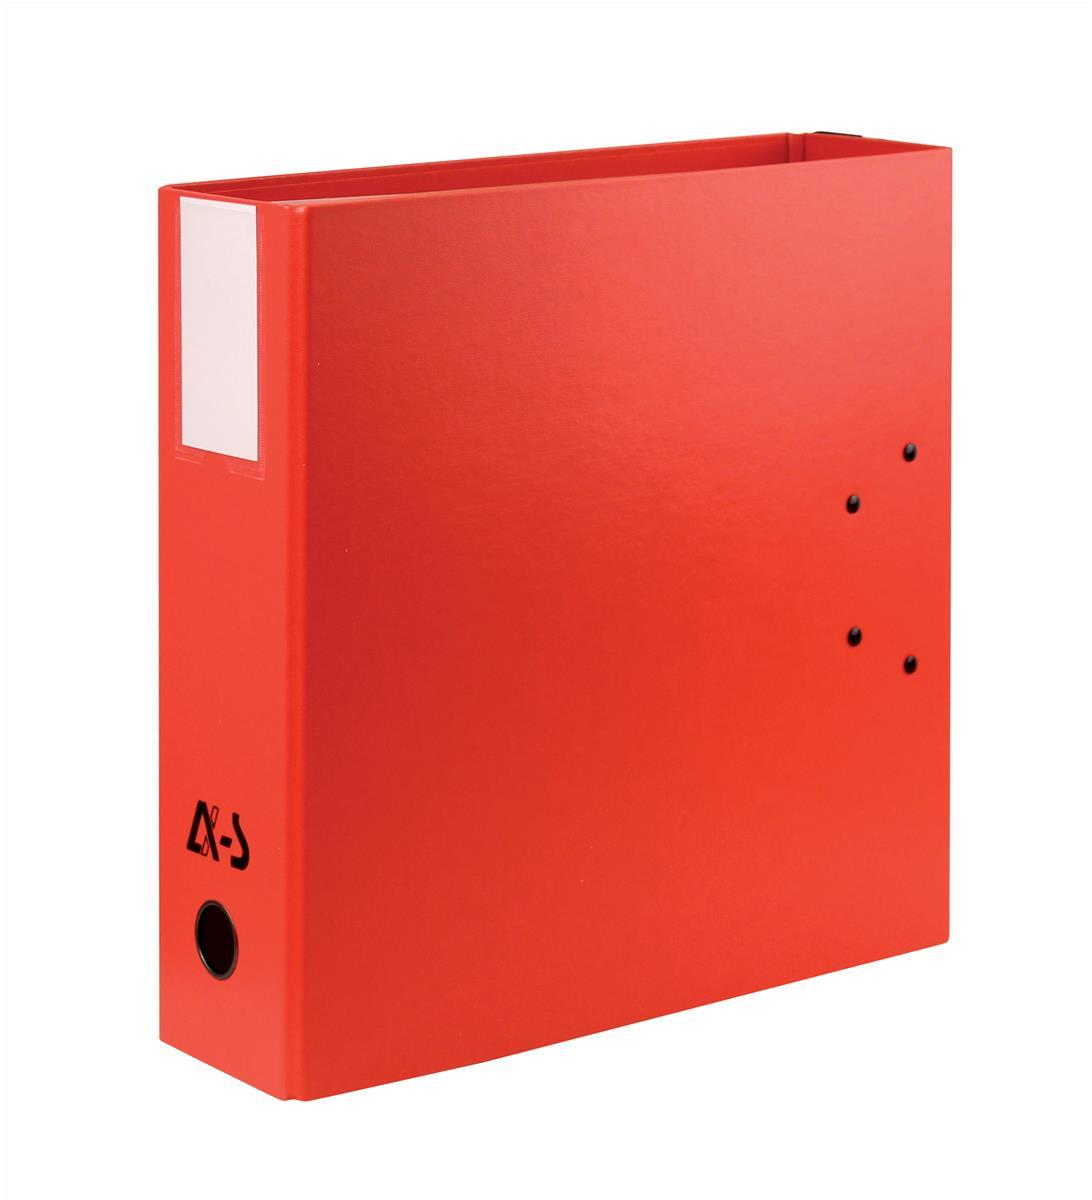 Image for Arianex Double Capacity Lever Arch Files File 2x50mm Spines A4 Red Ref DA4-RD